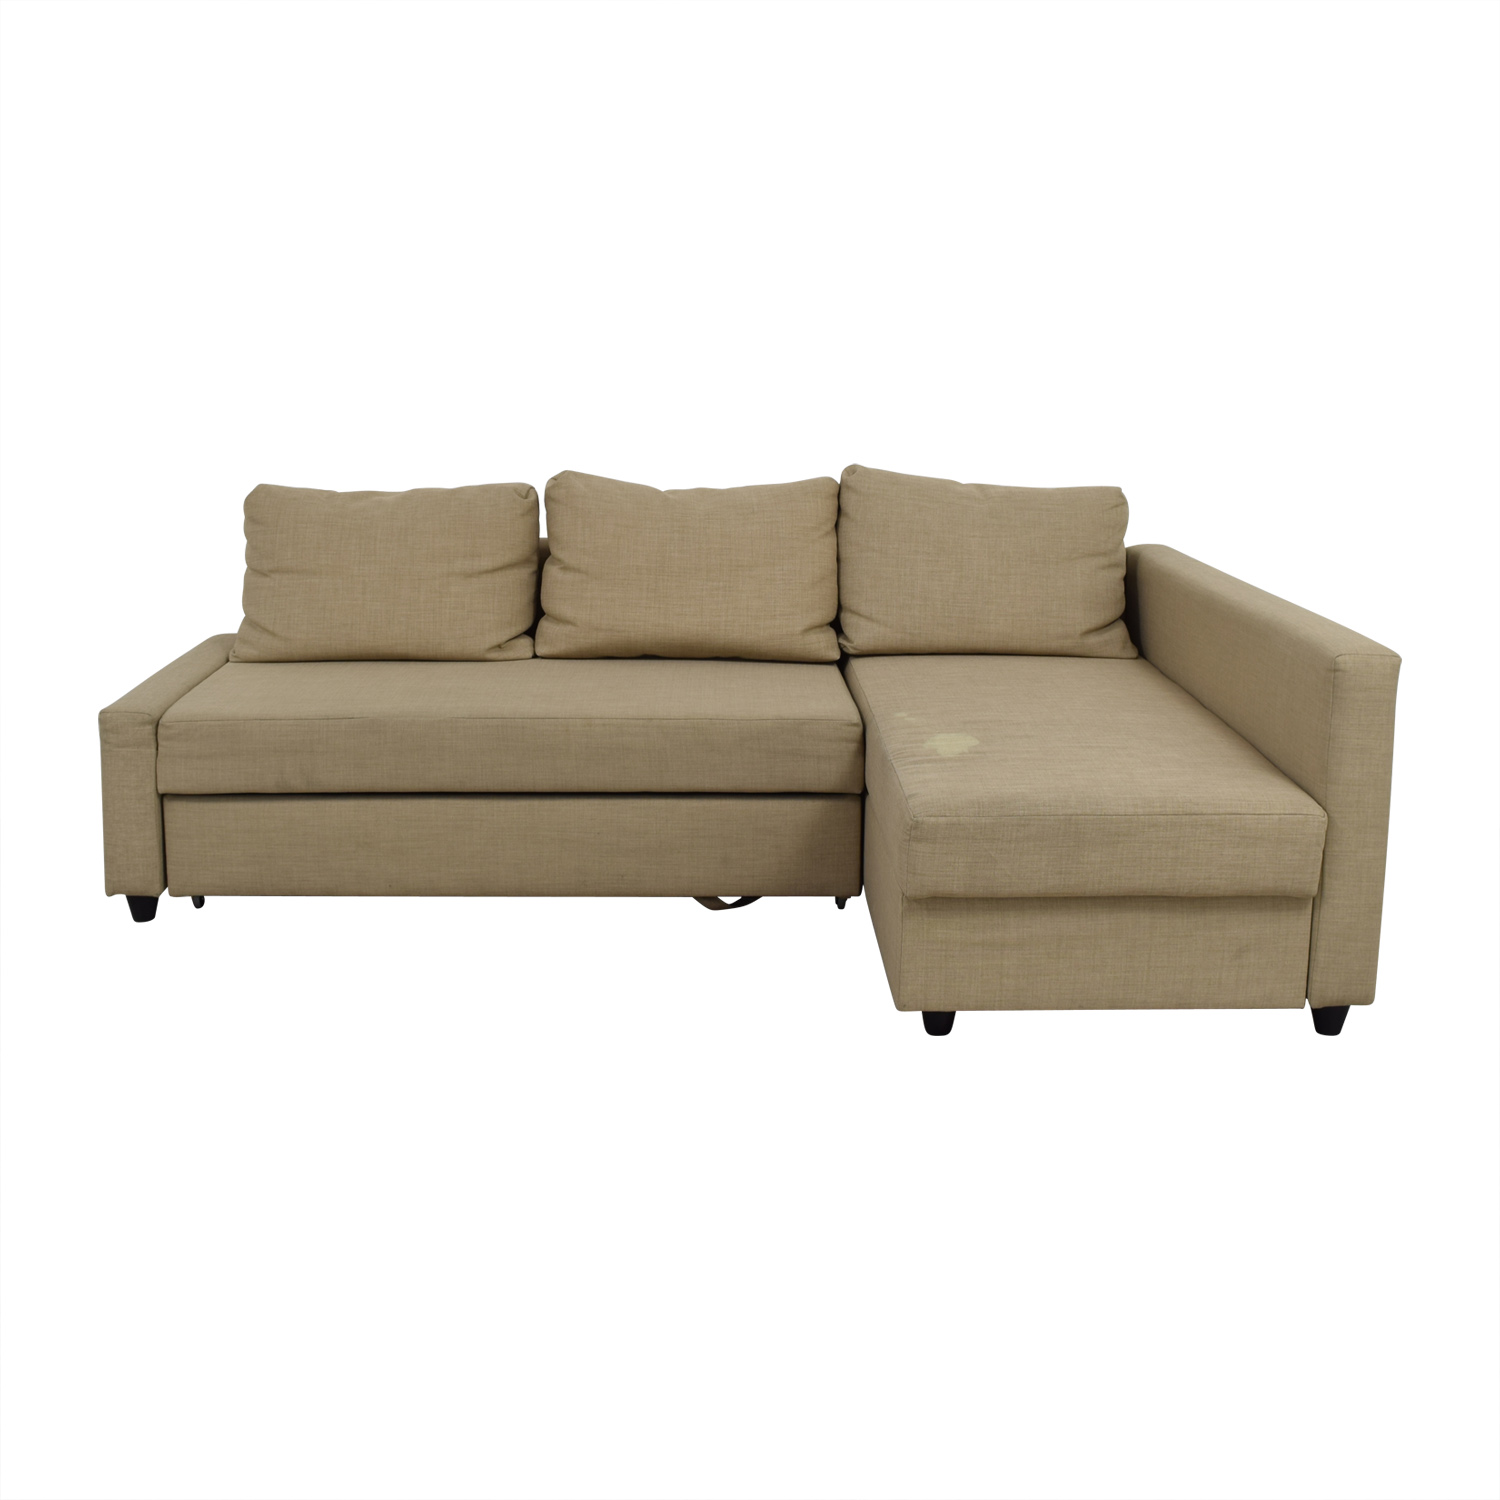 Ikea Friheten Tan Sleeper Sectional